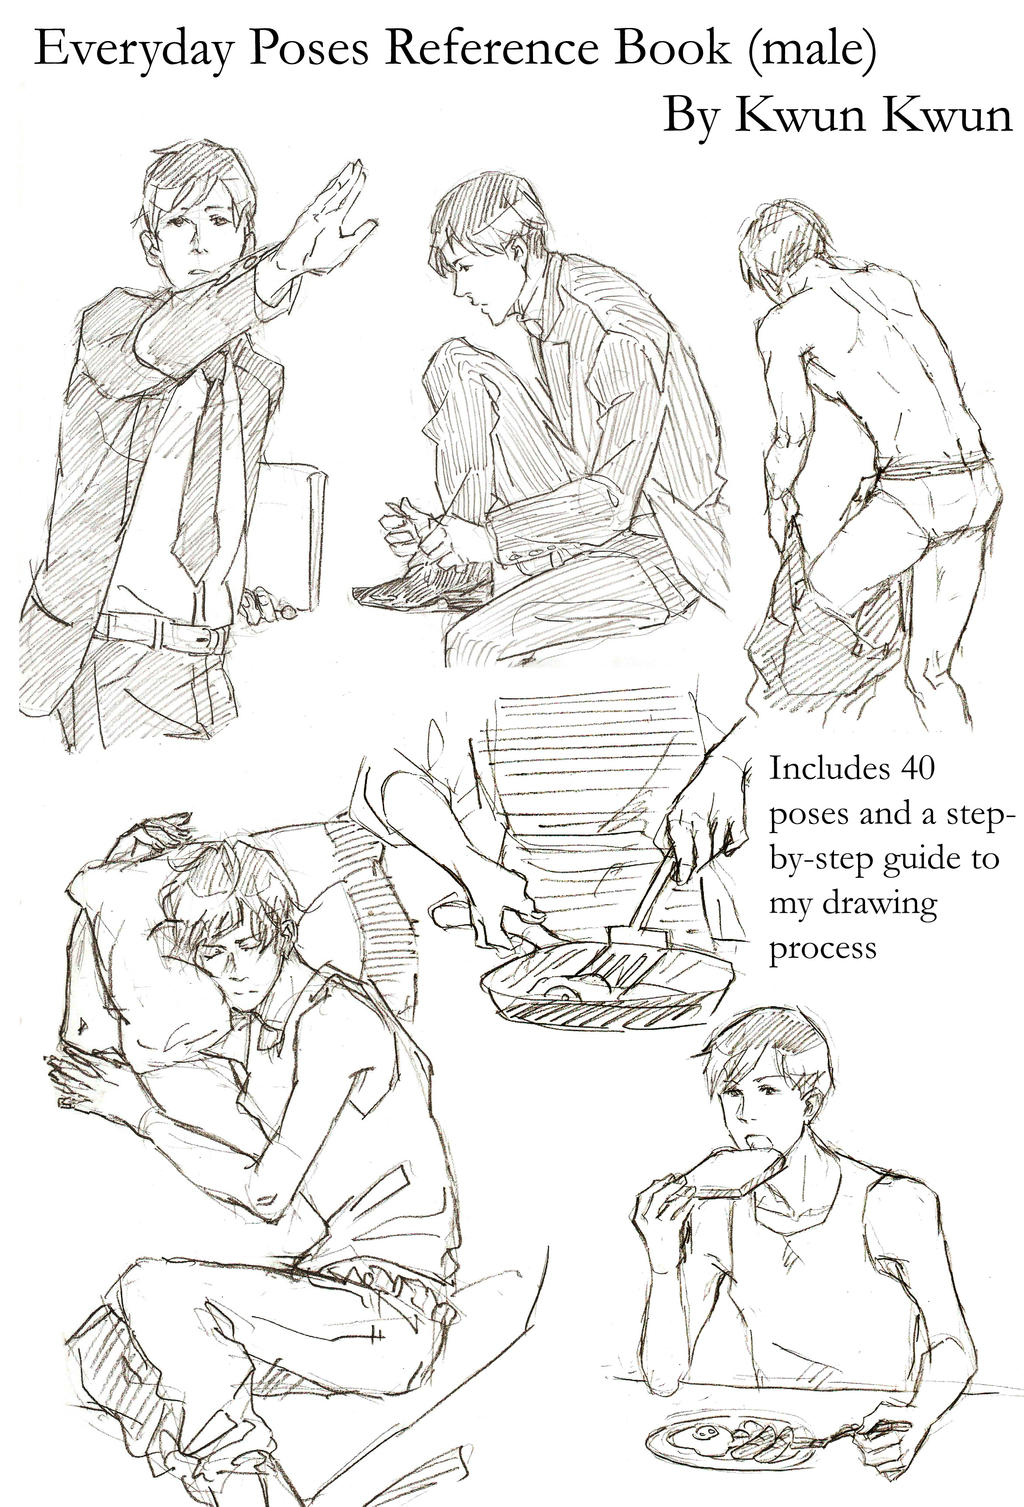 Everyday Poses Reference Book Male By Kwun Kwun On Deviantart